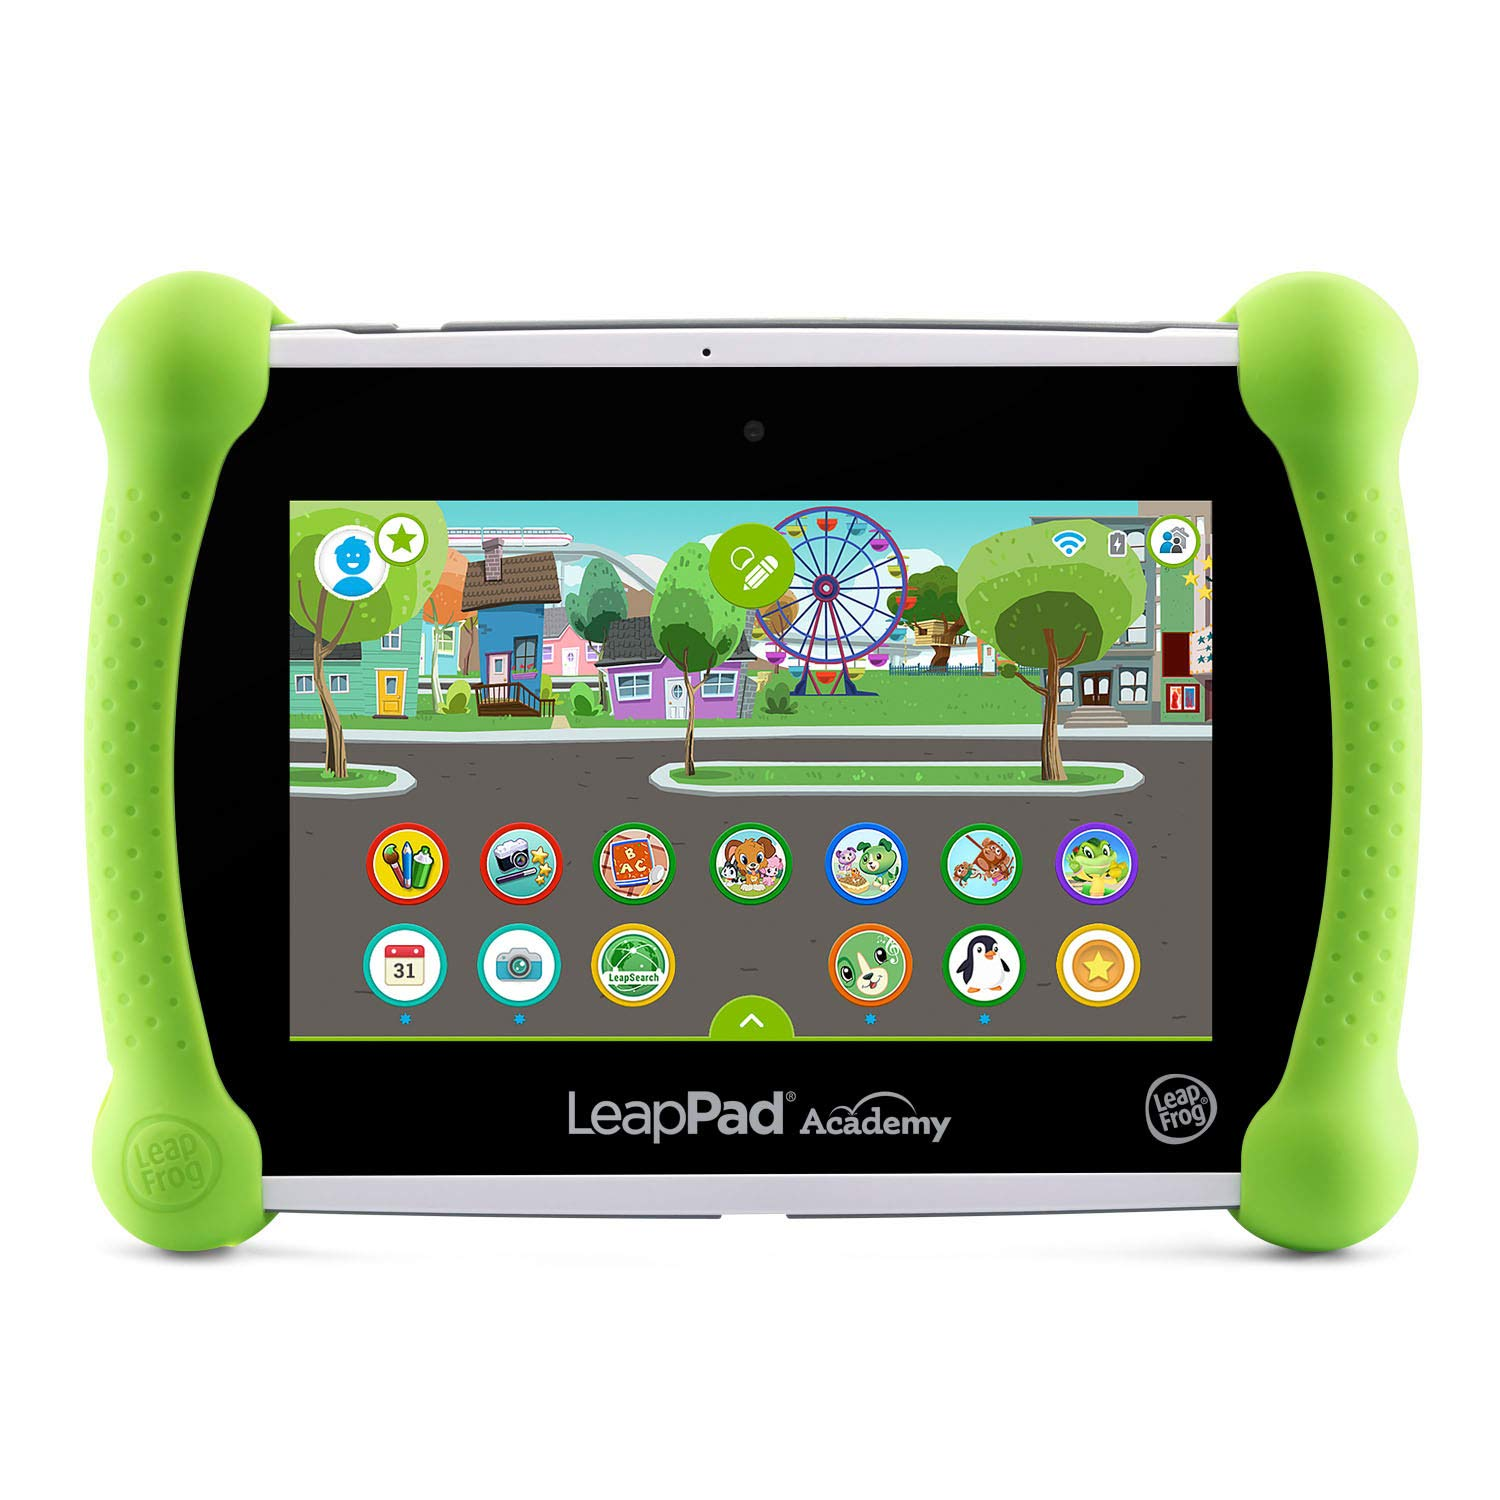 LeapFrog LeapPad Academy Kids' Learning Tablet, Green by LeapFrog (Image #1)